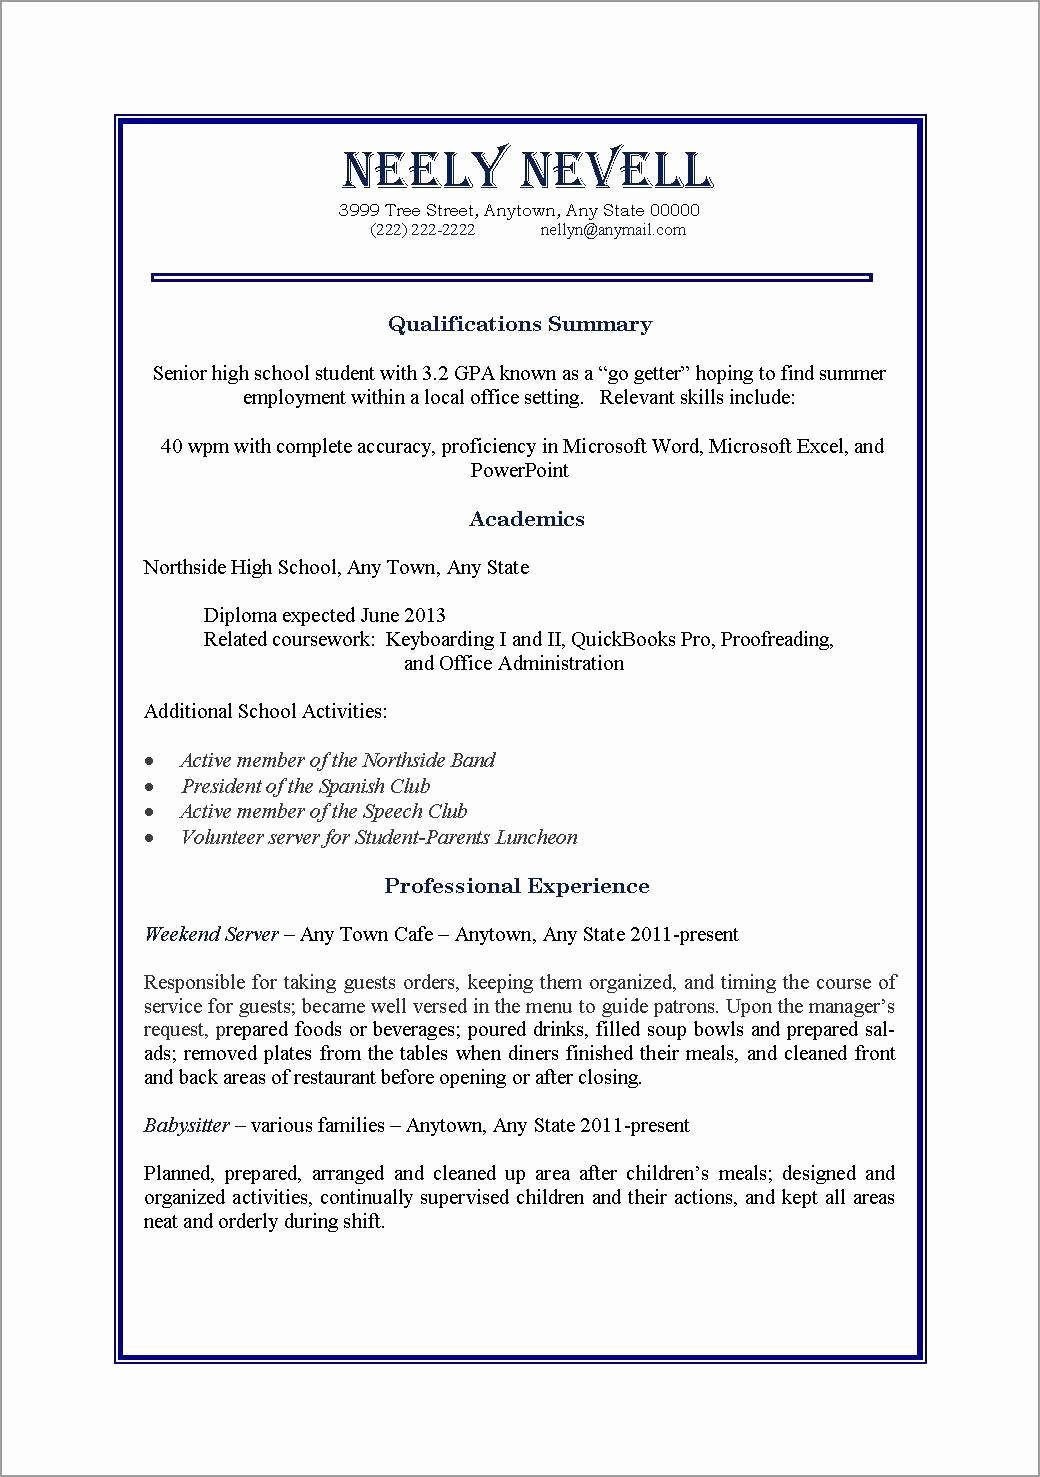 First Time Job Resume Lovely 10 Resume For First Job Out College First Job Resume Student Resume Template Job Resume Samples